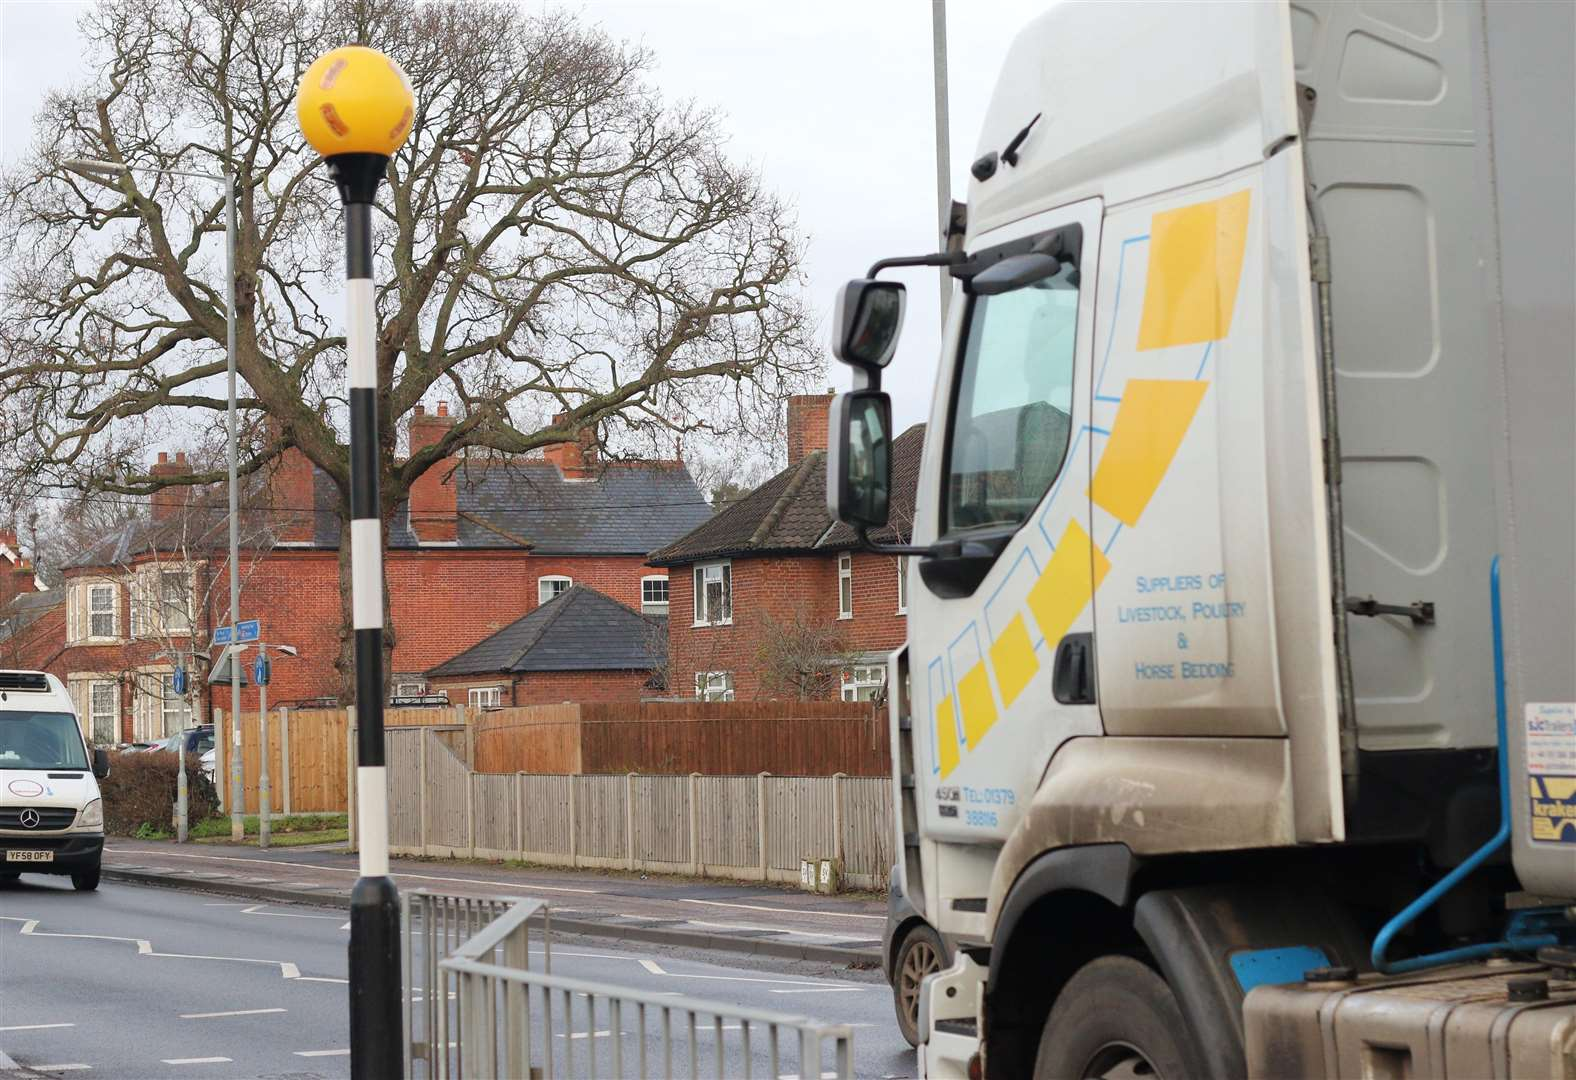 Engineers recalled to new pedestrian crossing in Diss